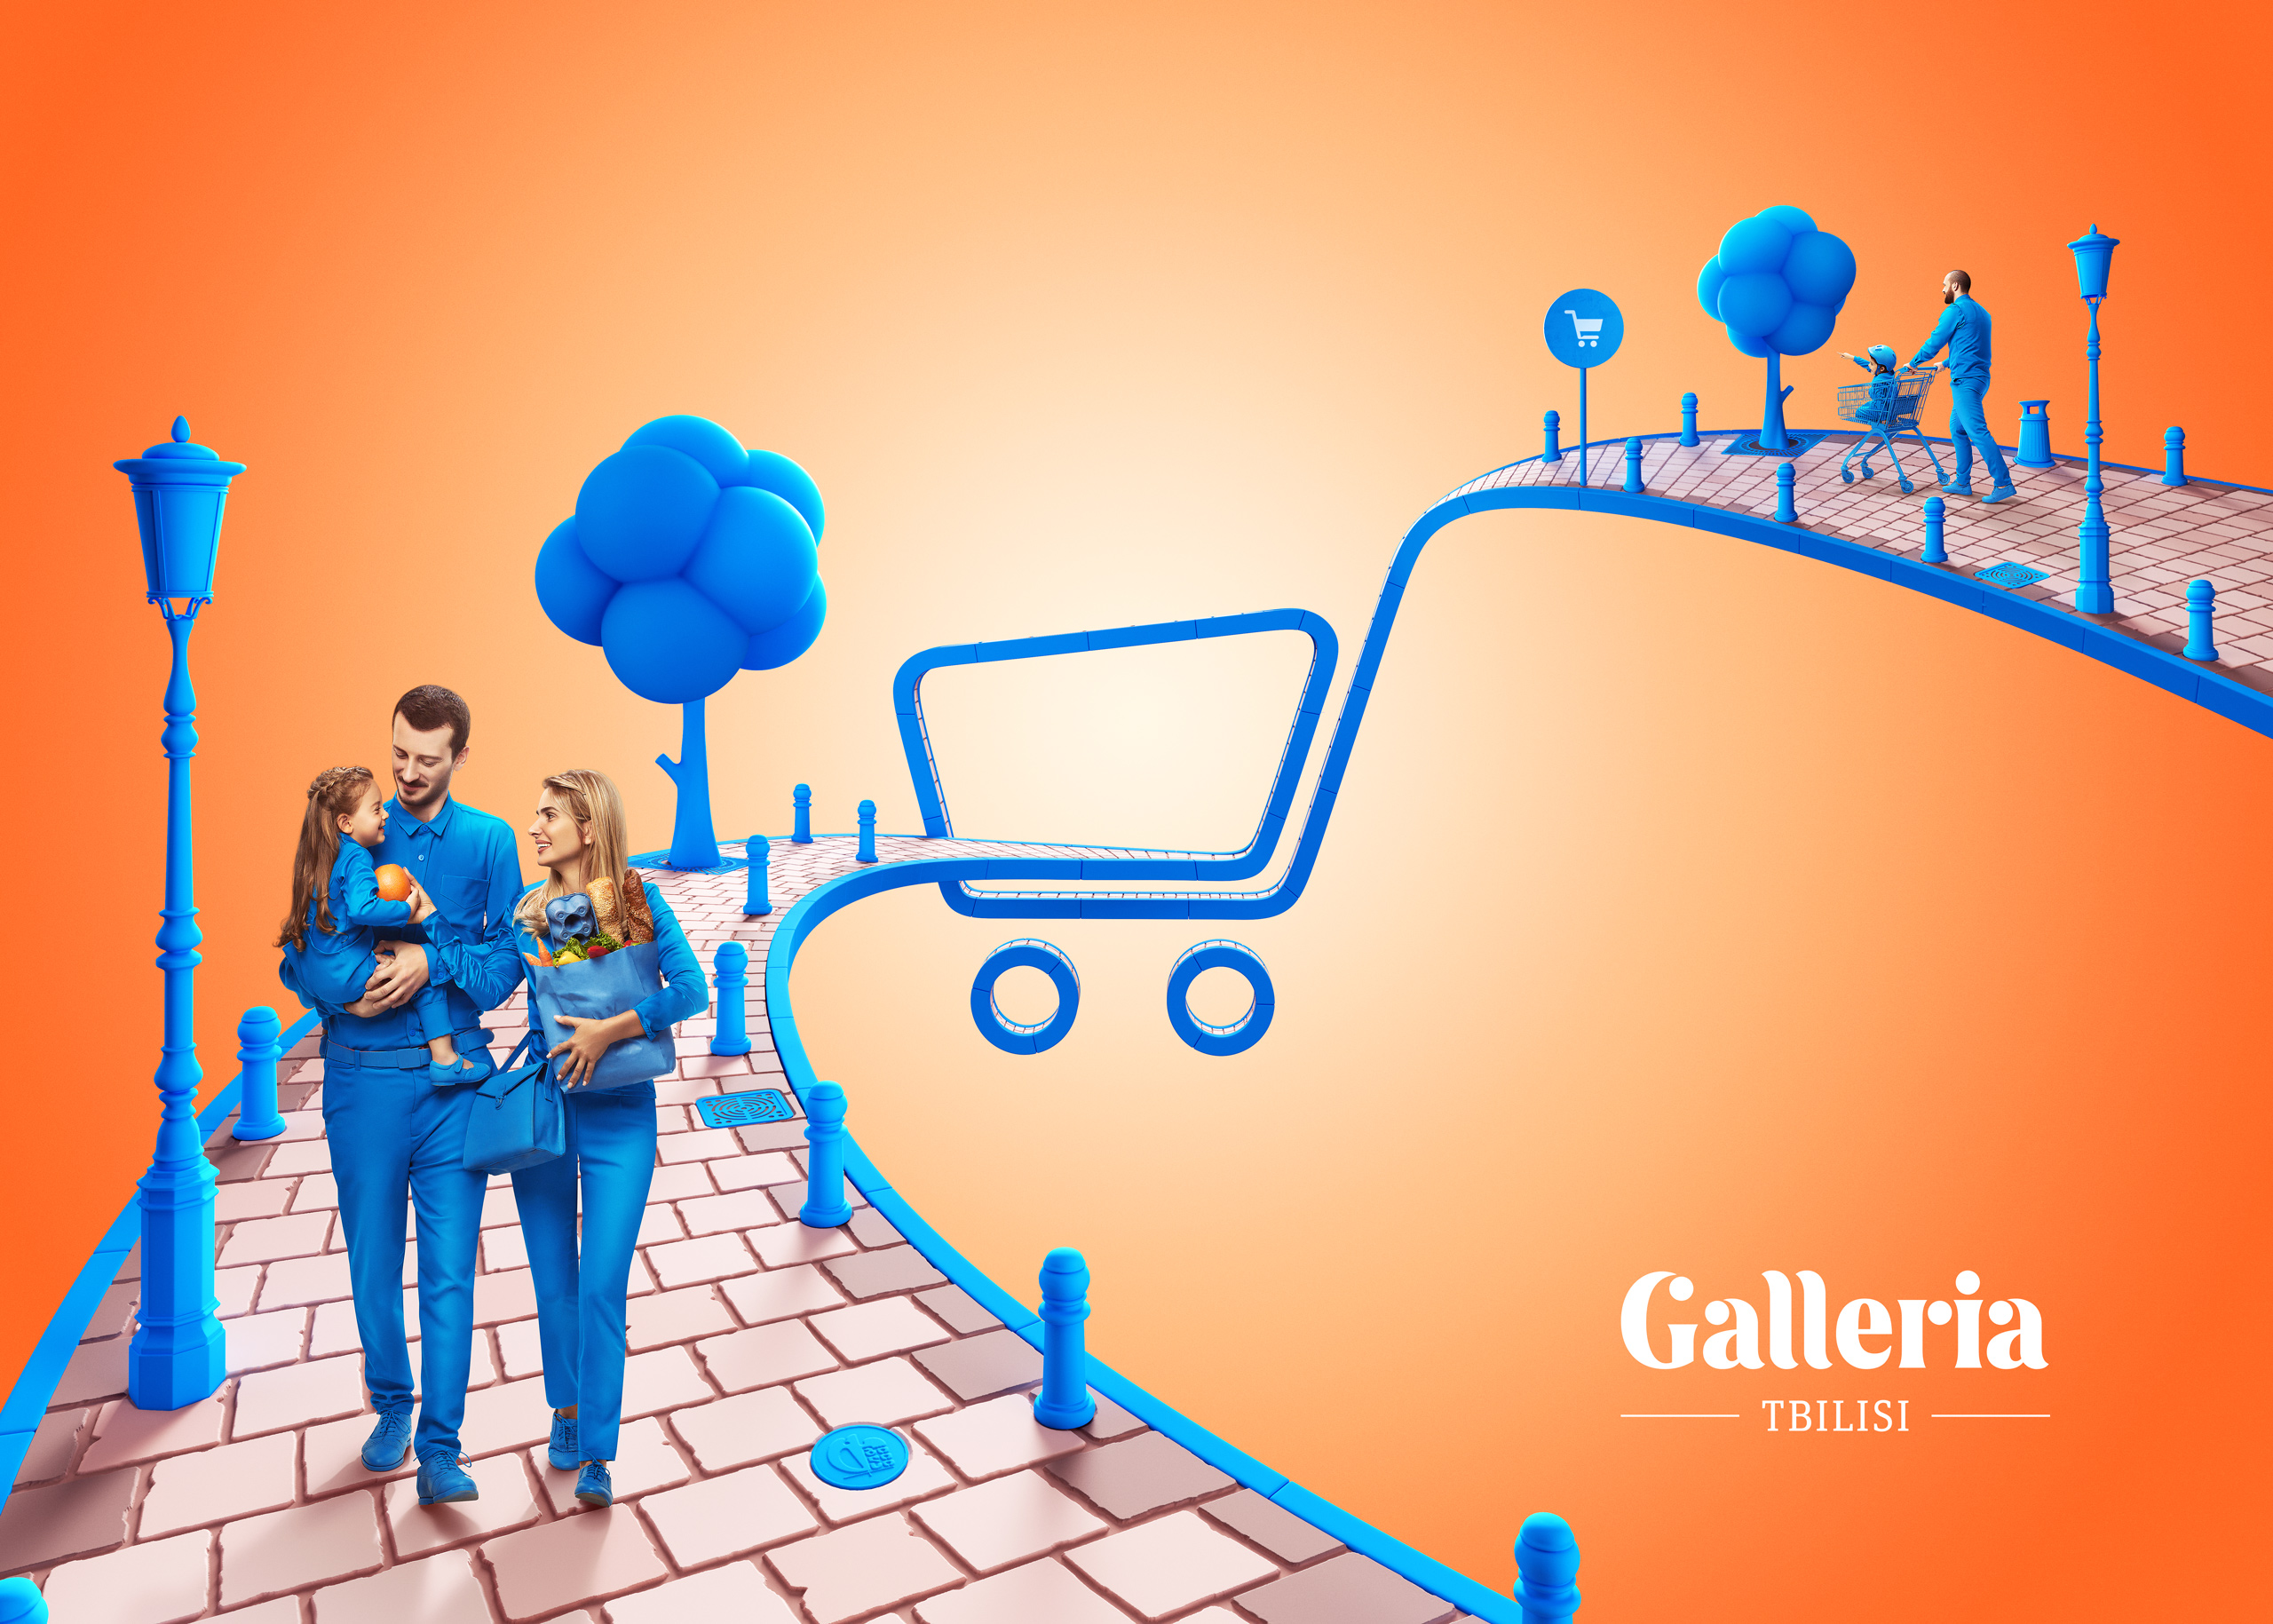 Galleria_Goodwill_NonCrop_w2560_quality85